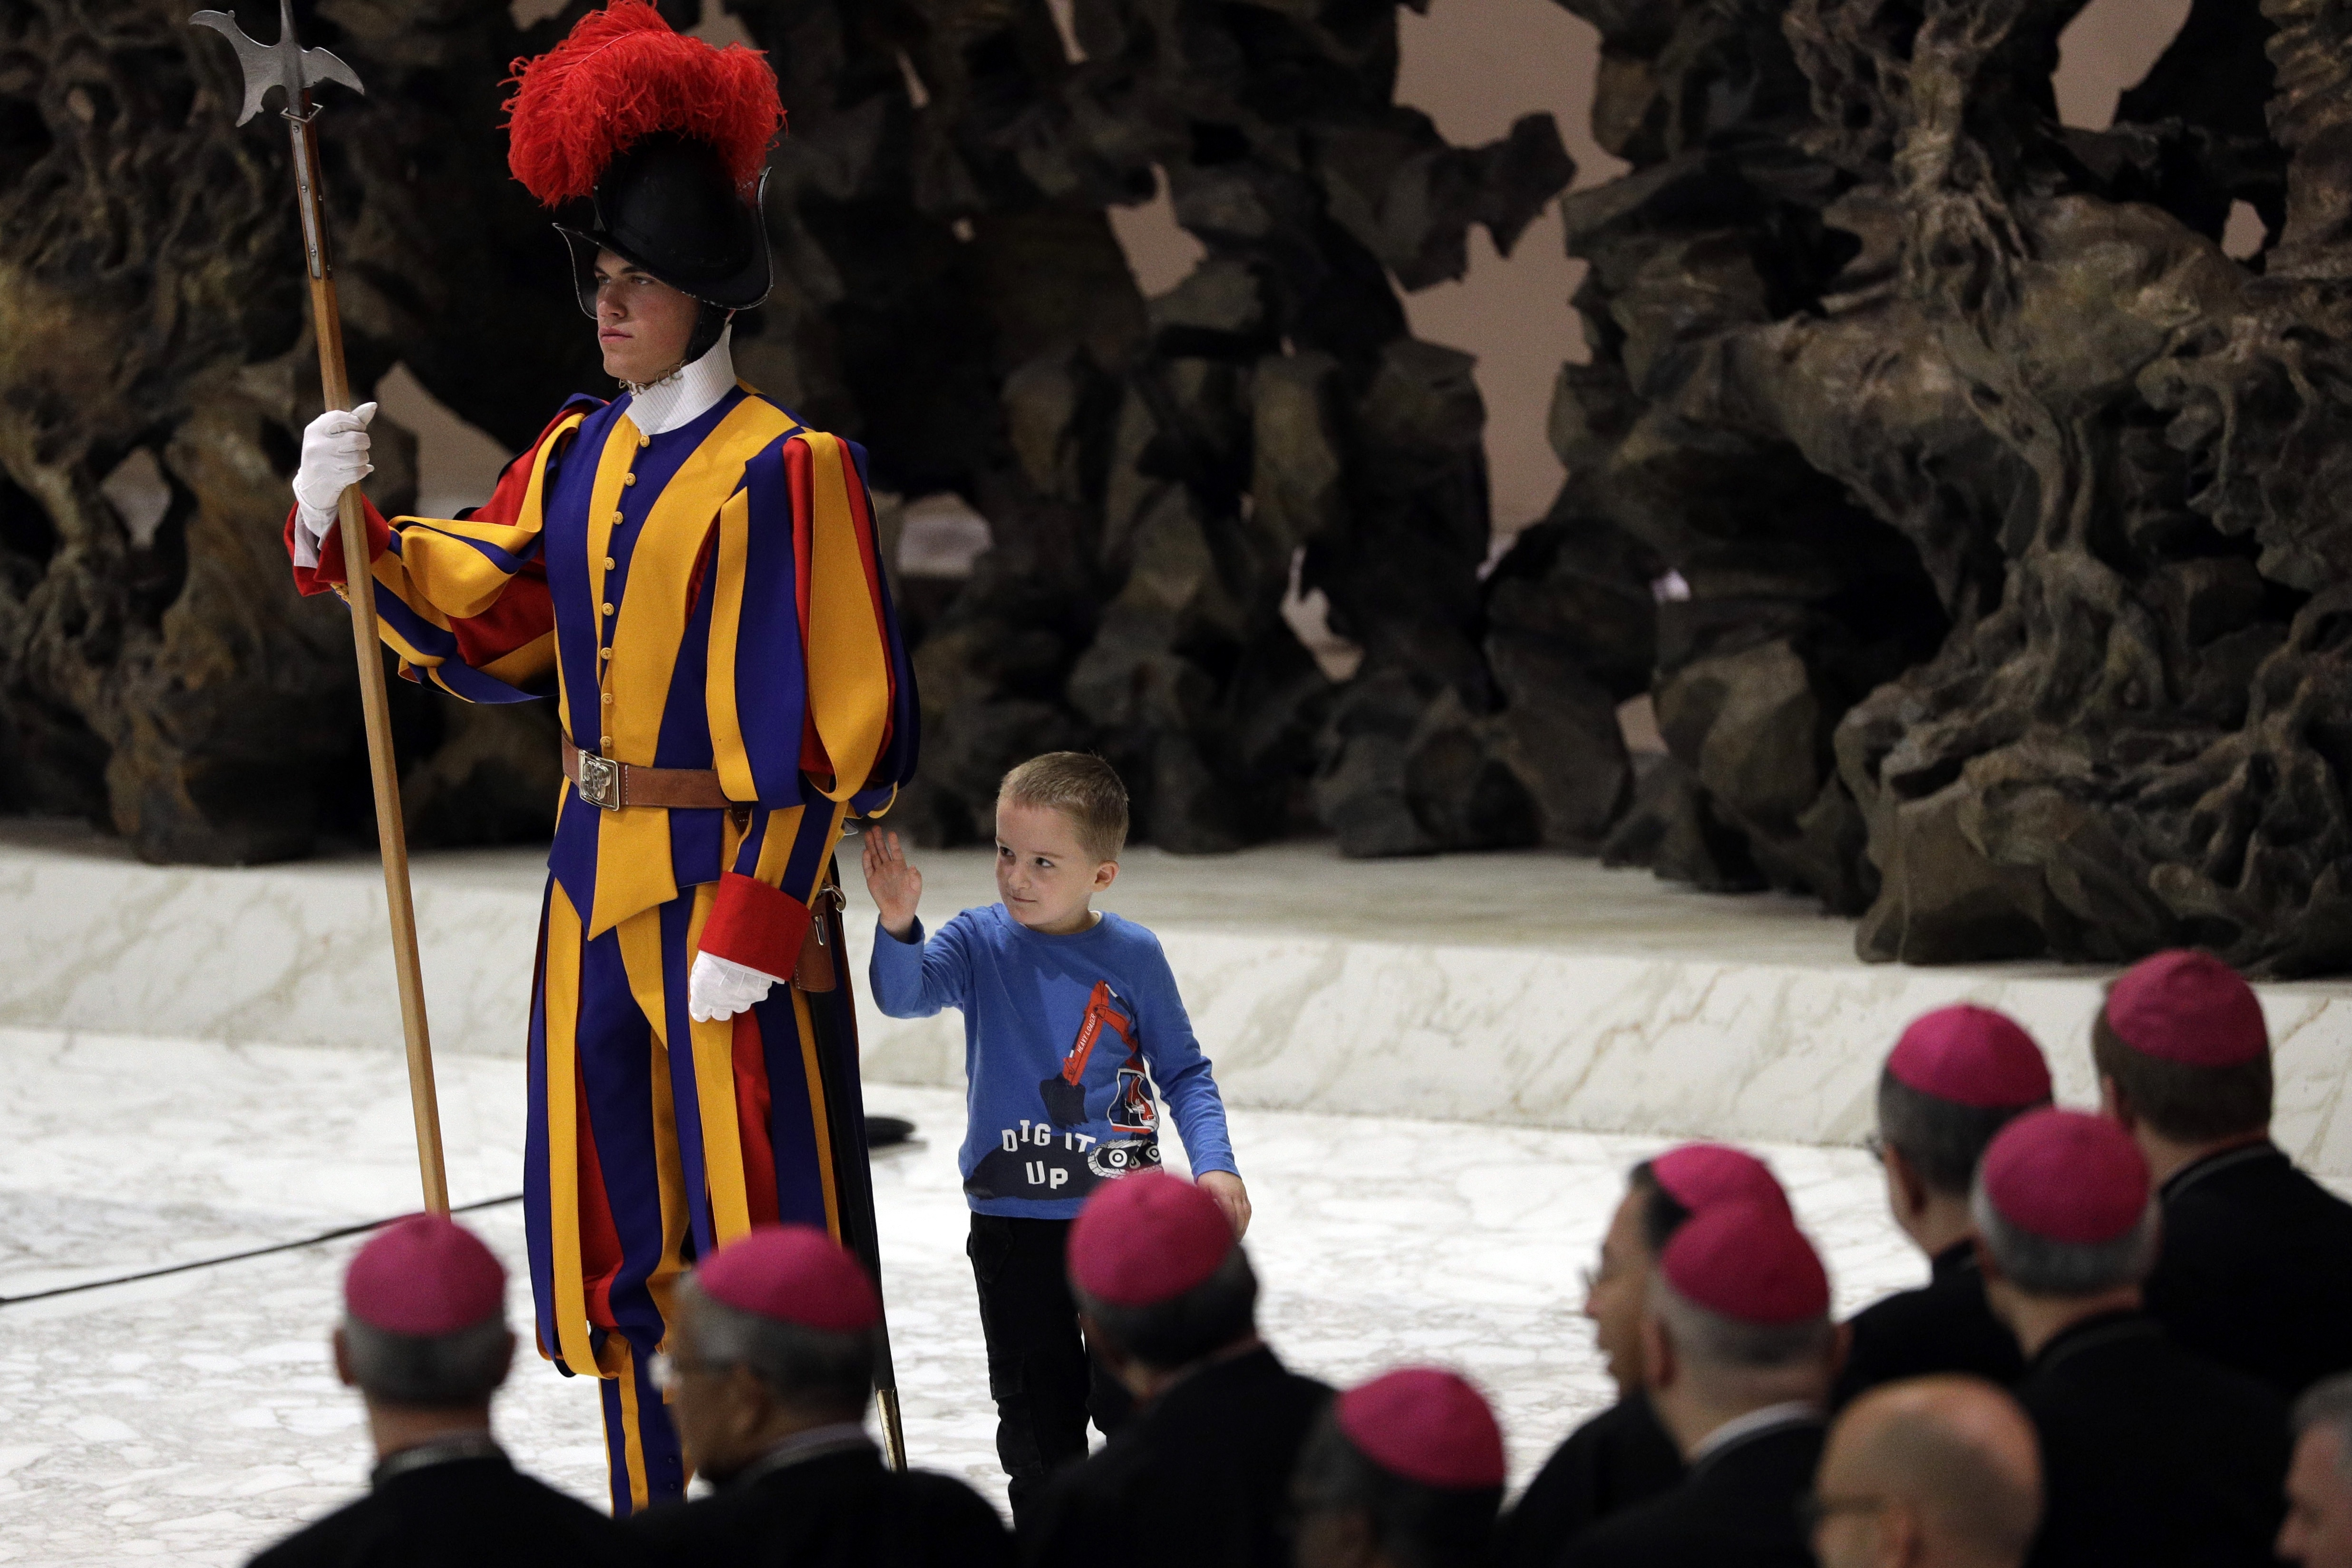 The child walks around the back of the guard